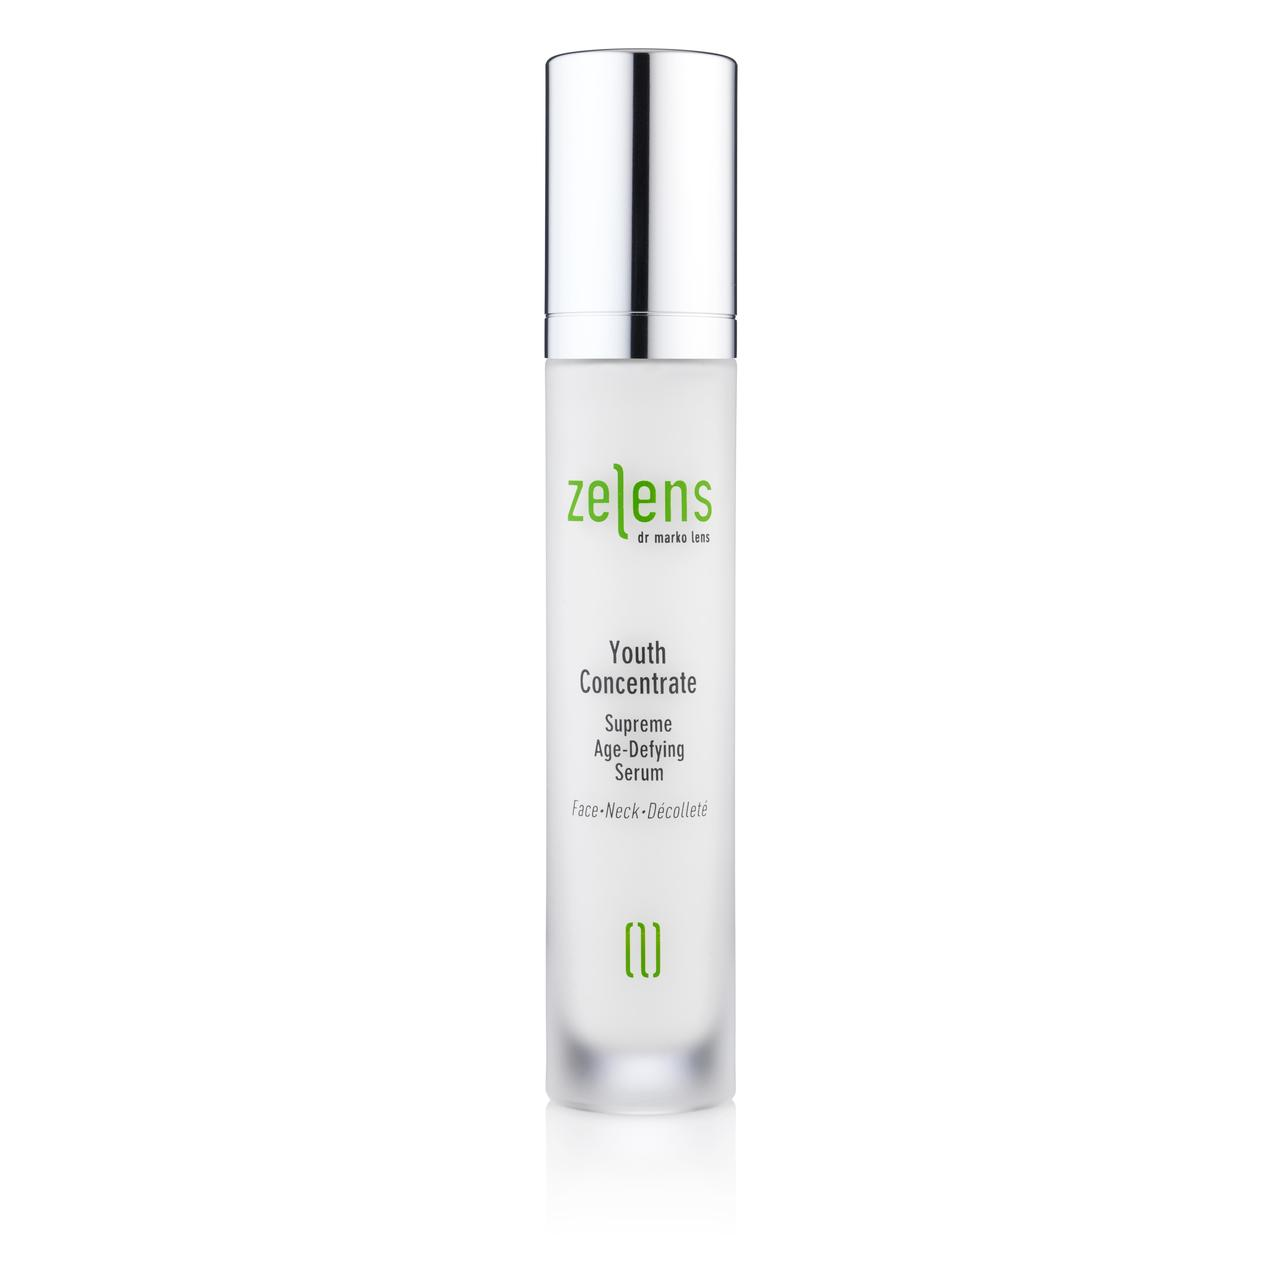 An image of Zelens Youth Concentrate Supreme Age-Defying Serum